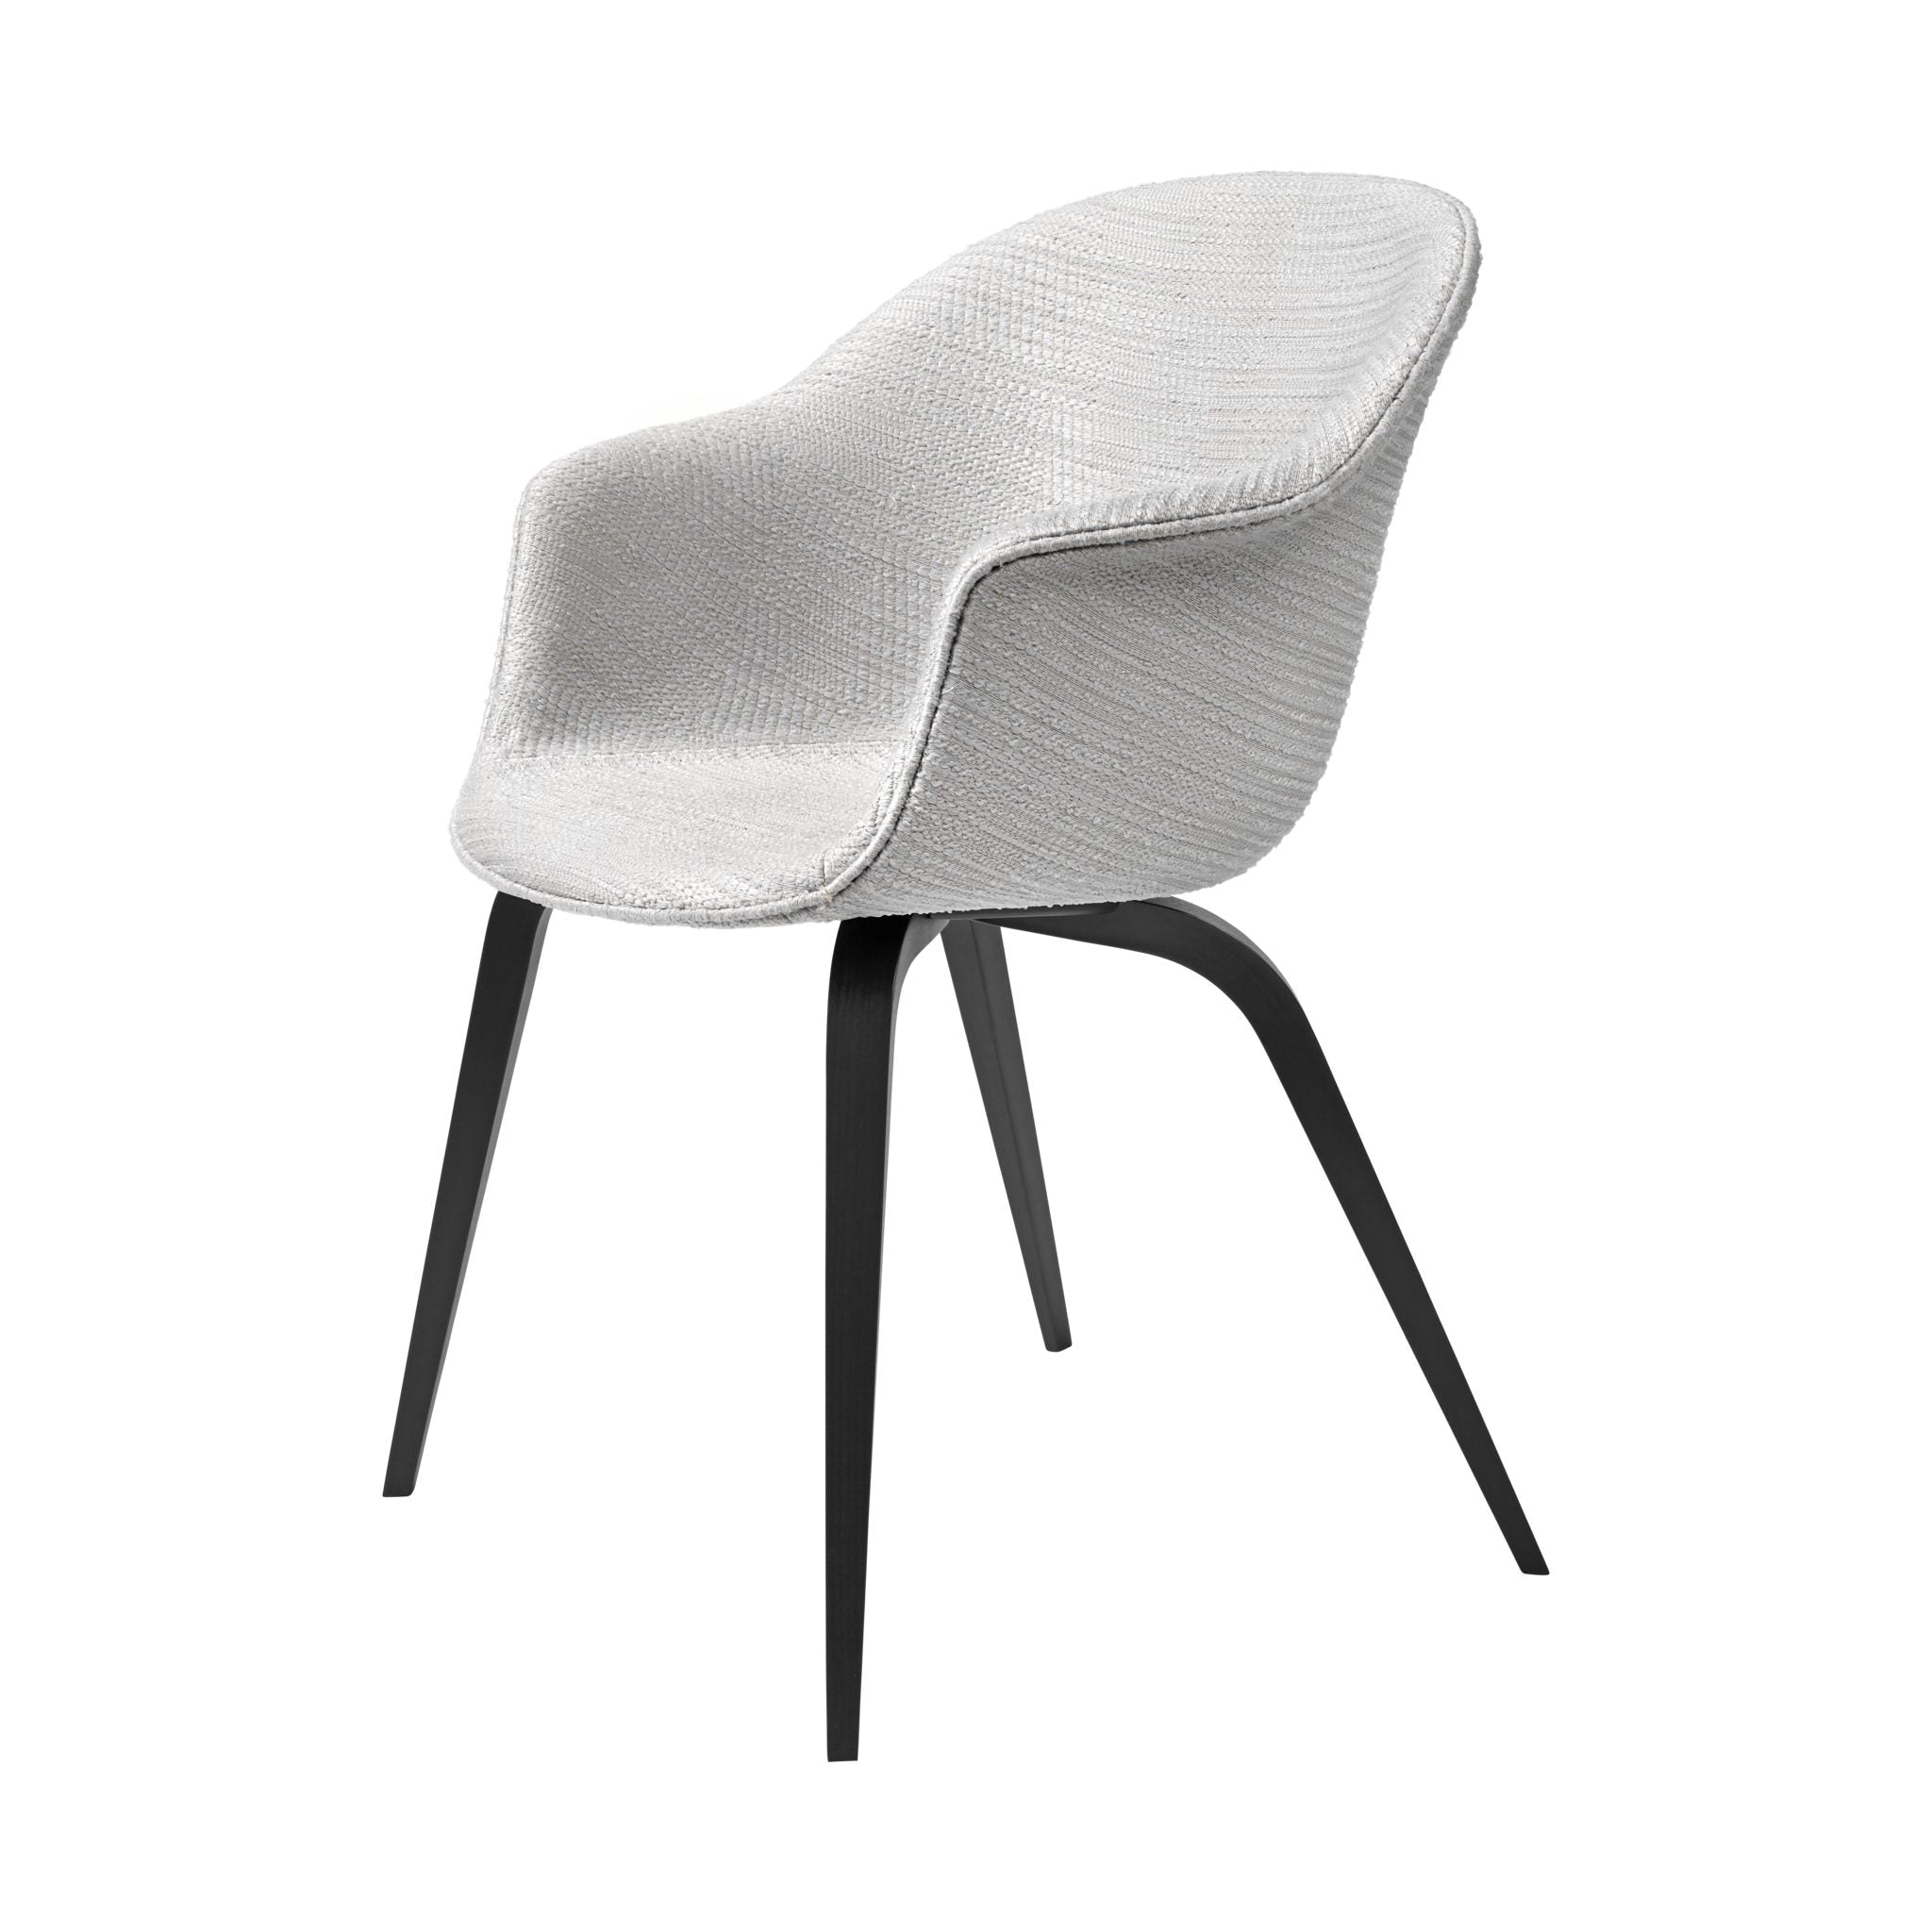 Bat Dining Chair Wood Base Upholstered by Gubi